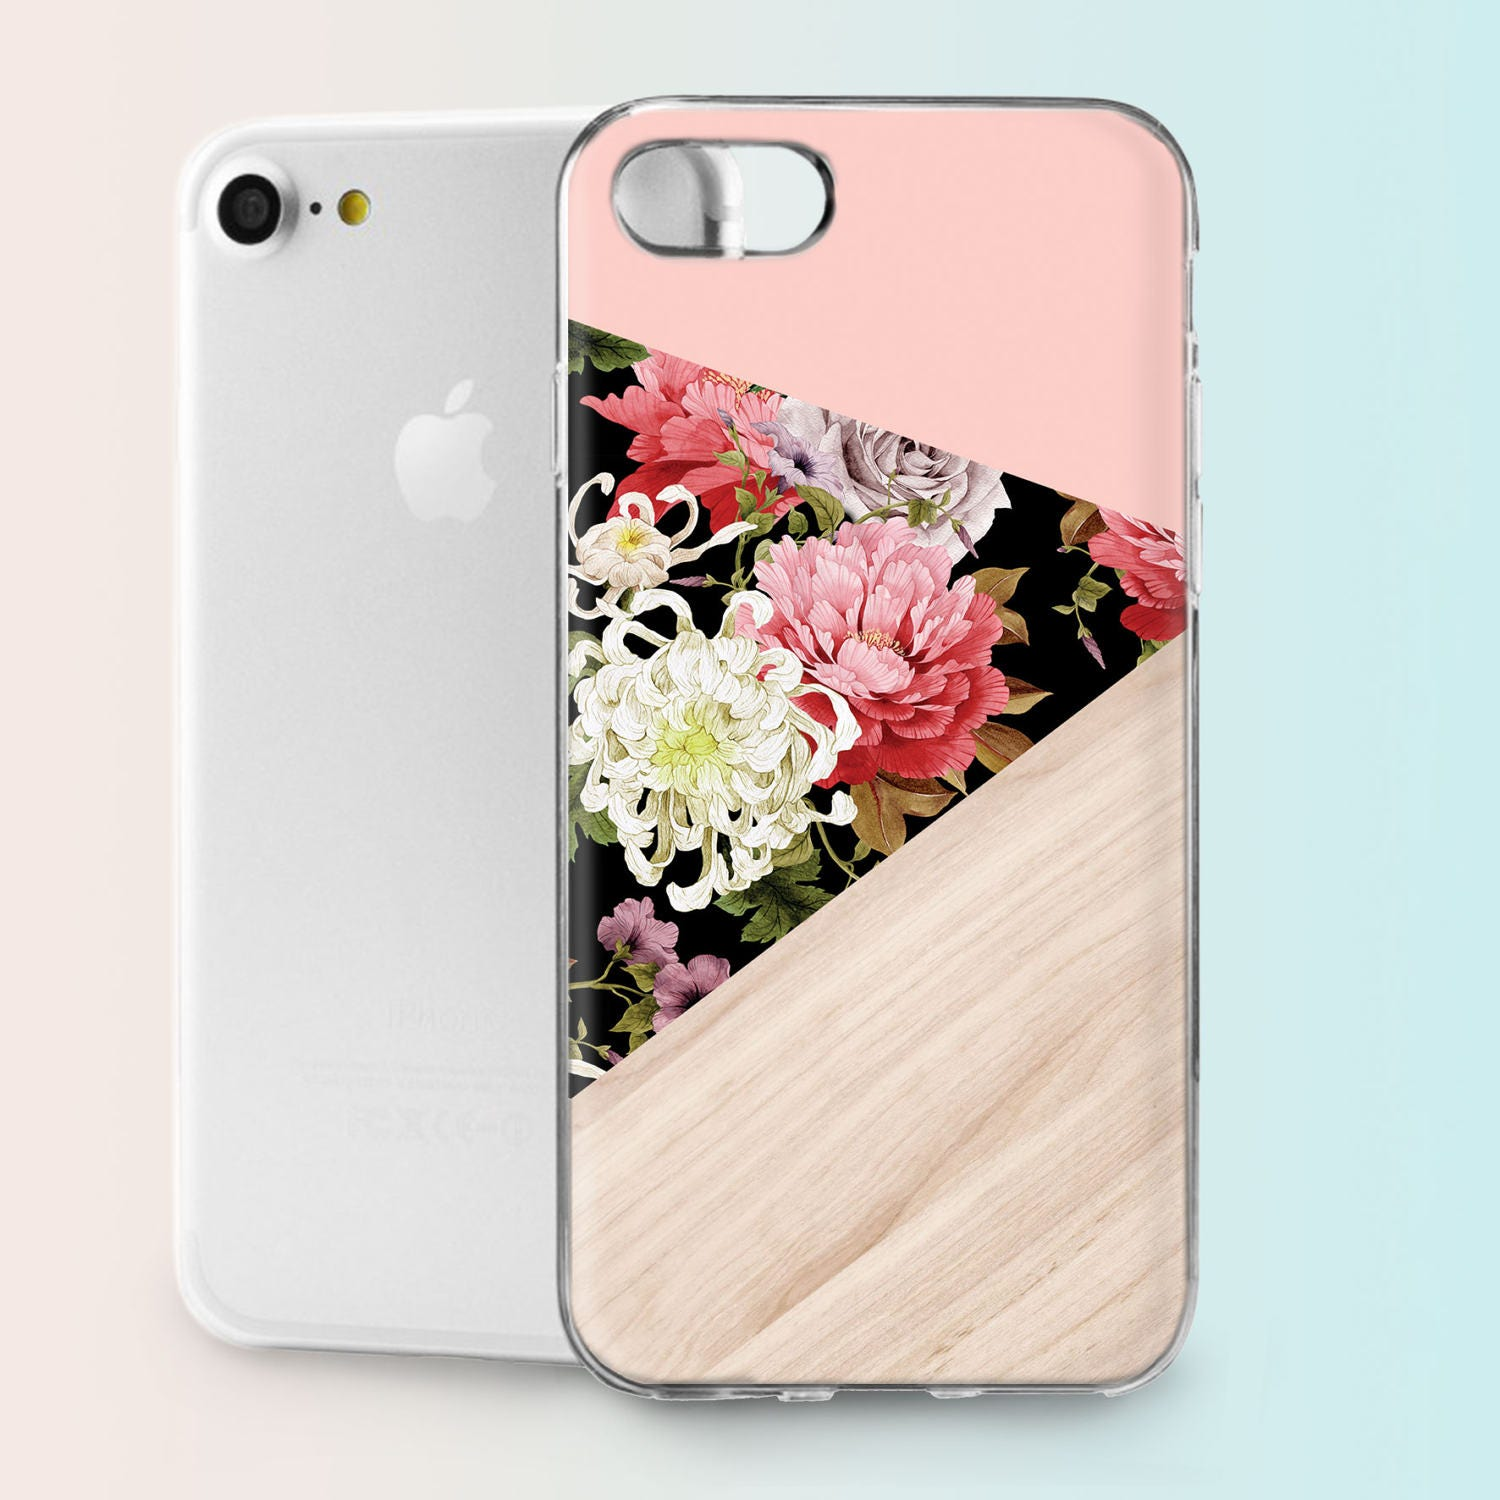 iPhone 6s Case Phone Case iPhone 7 Geometry iPhone 6 Plus Hard Case iPhone 5c Case iPhone 5 Cover Floral iPhone 4 Case Flower iPhone 052